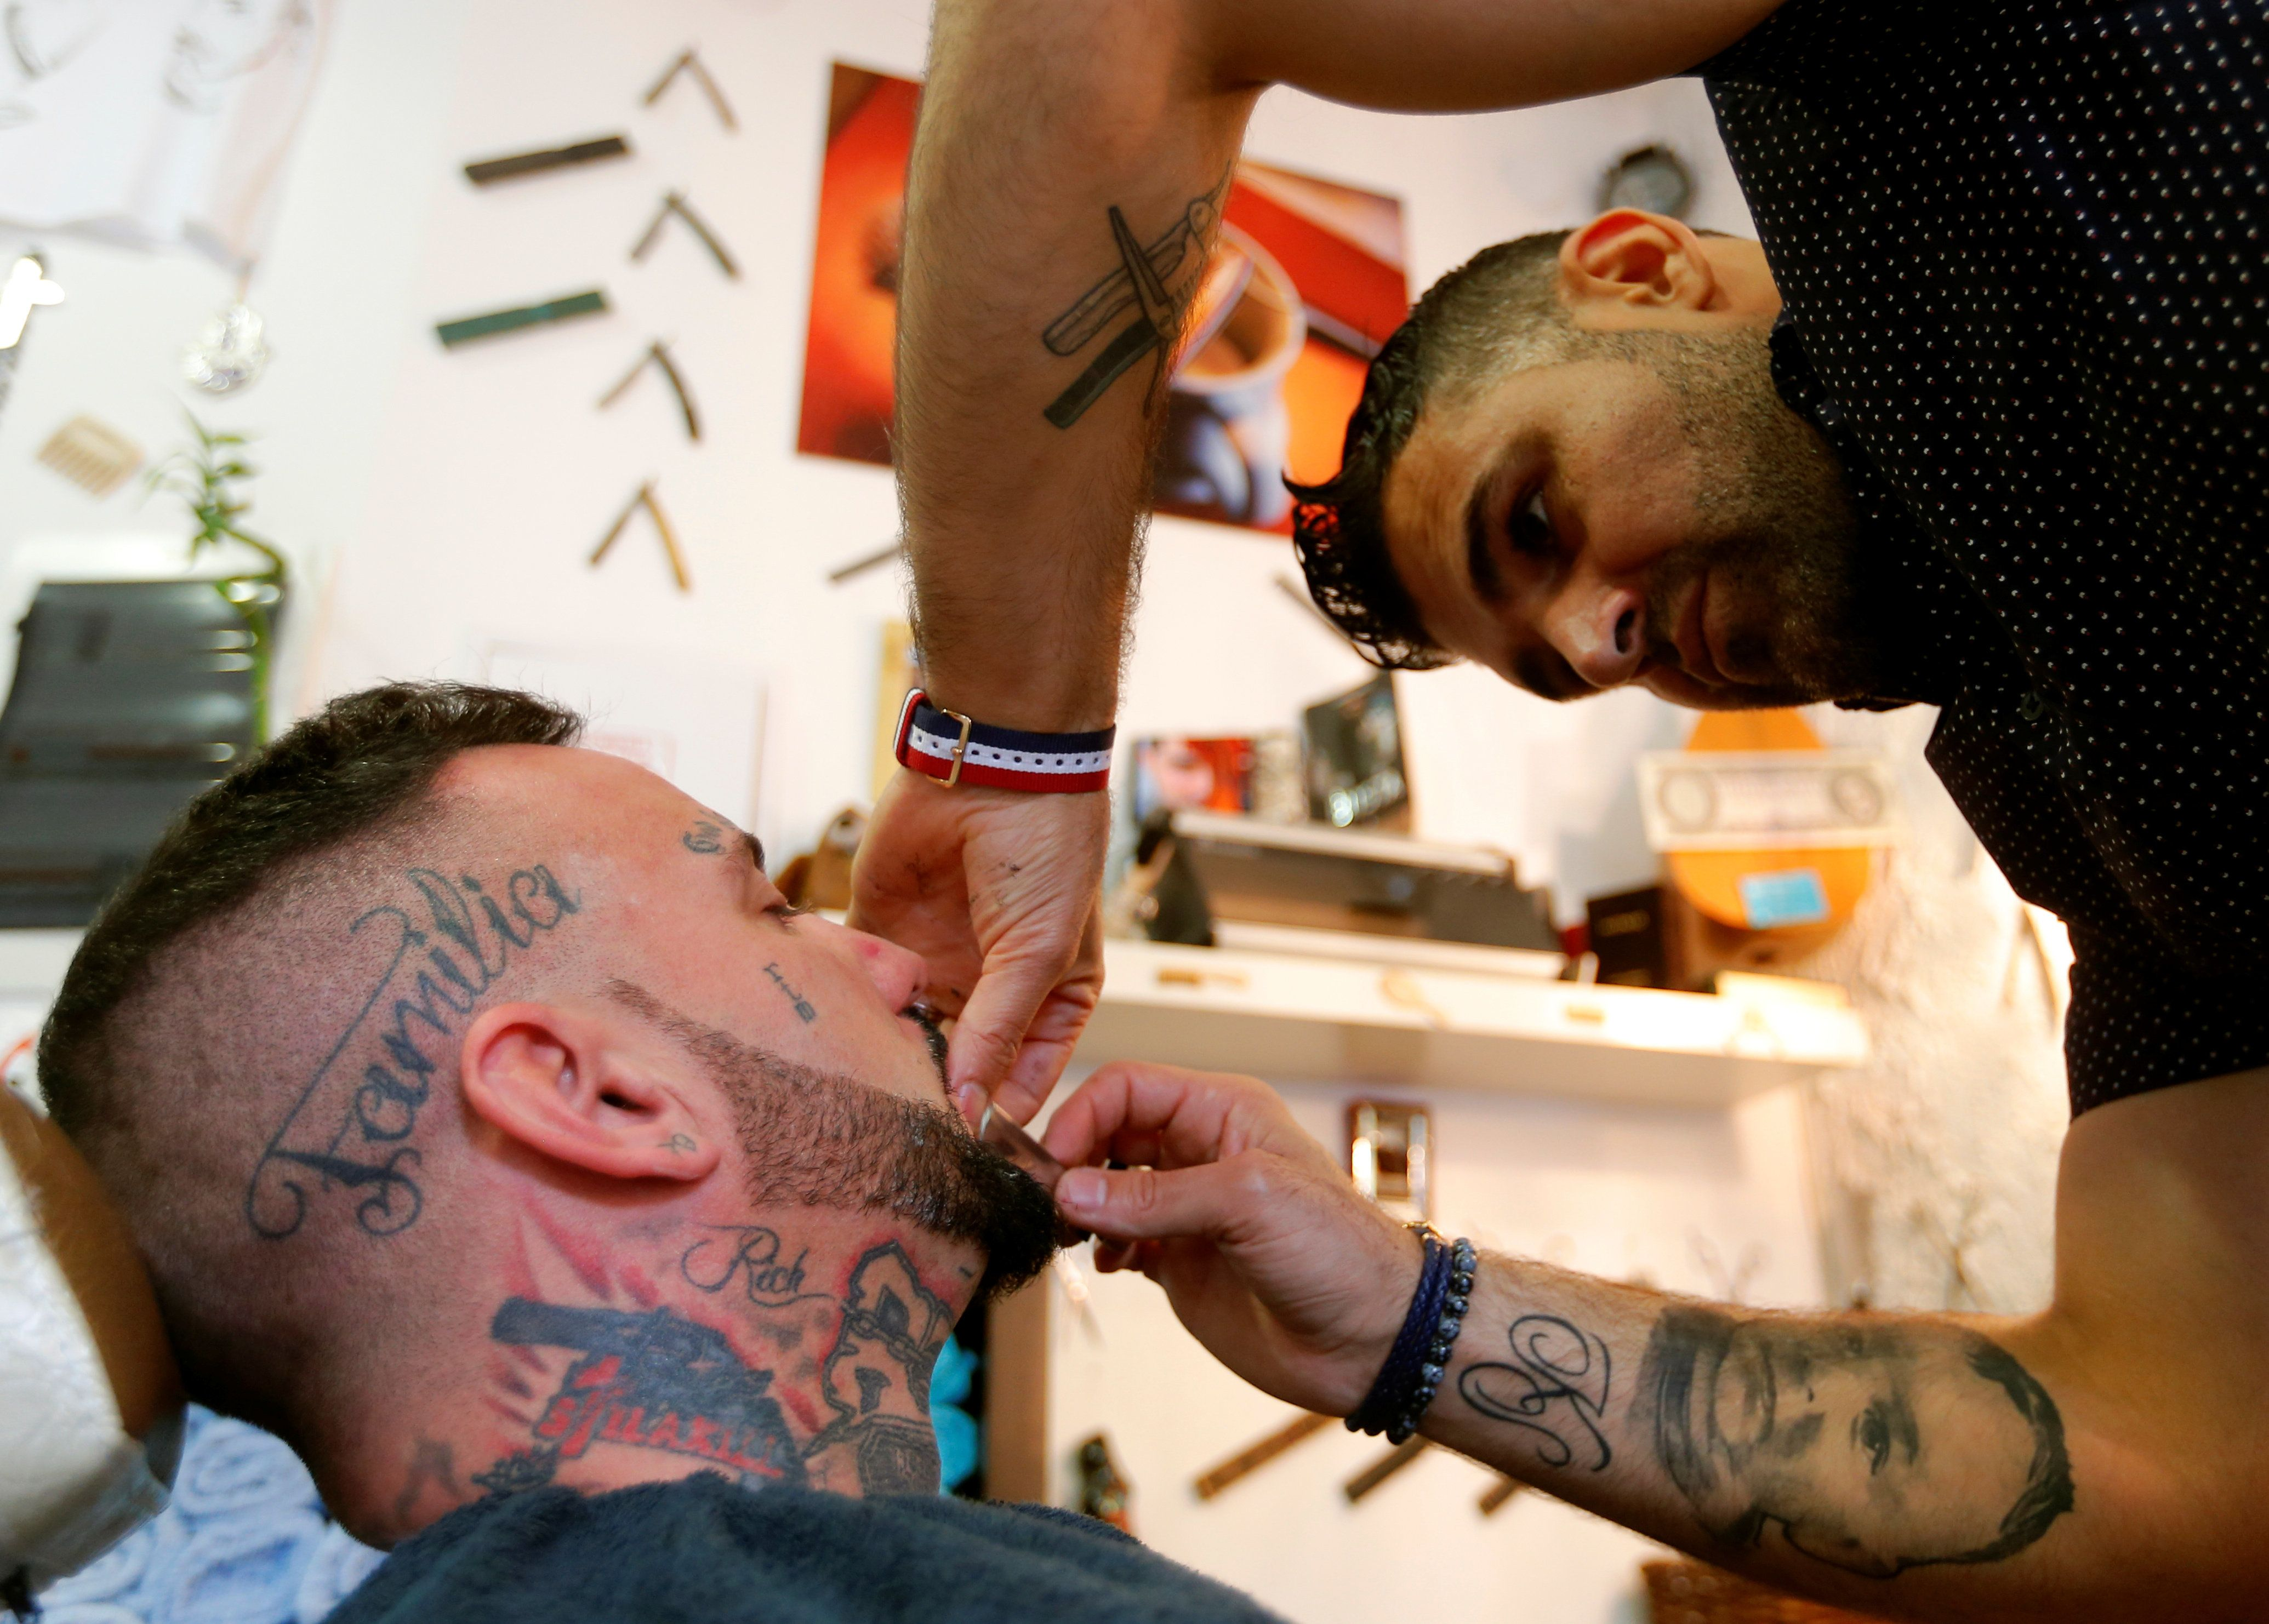 Ibrahim Haji Mohammad, a Kurdish refugee from Syria, trims a beard of a client in his barber's shop in Budapest, Hungary, May 24,2016. REUTERS/Laszlo Balogh